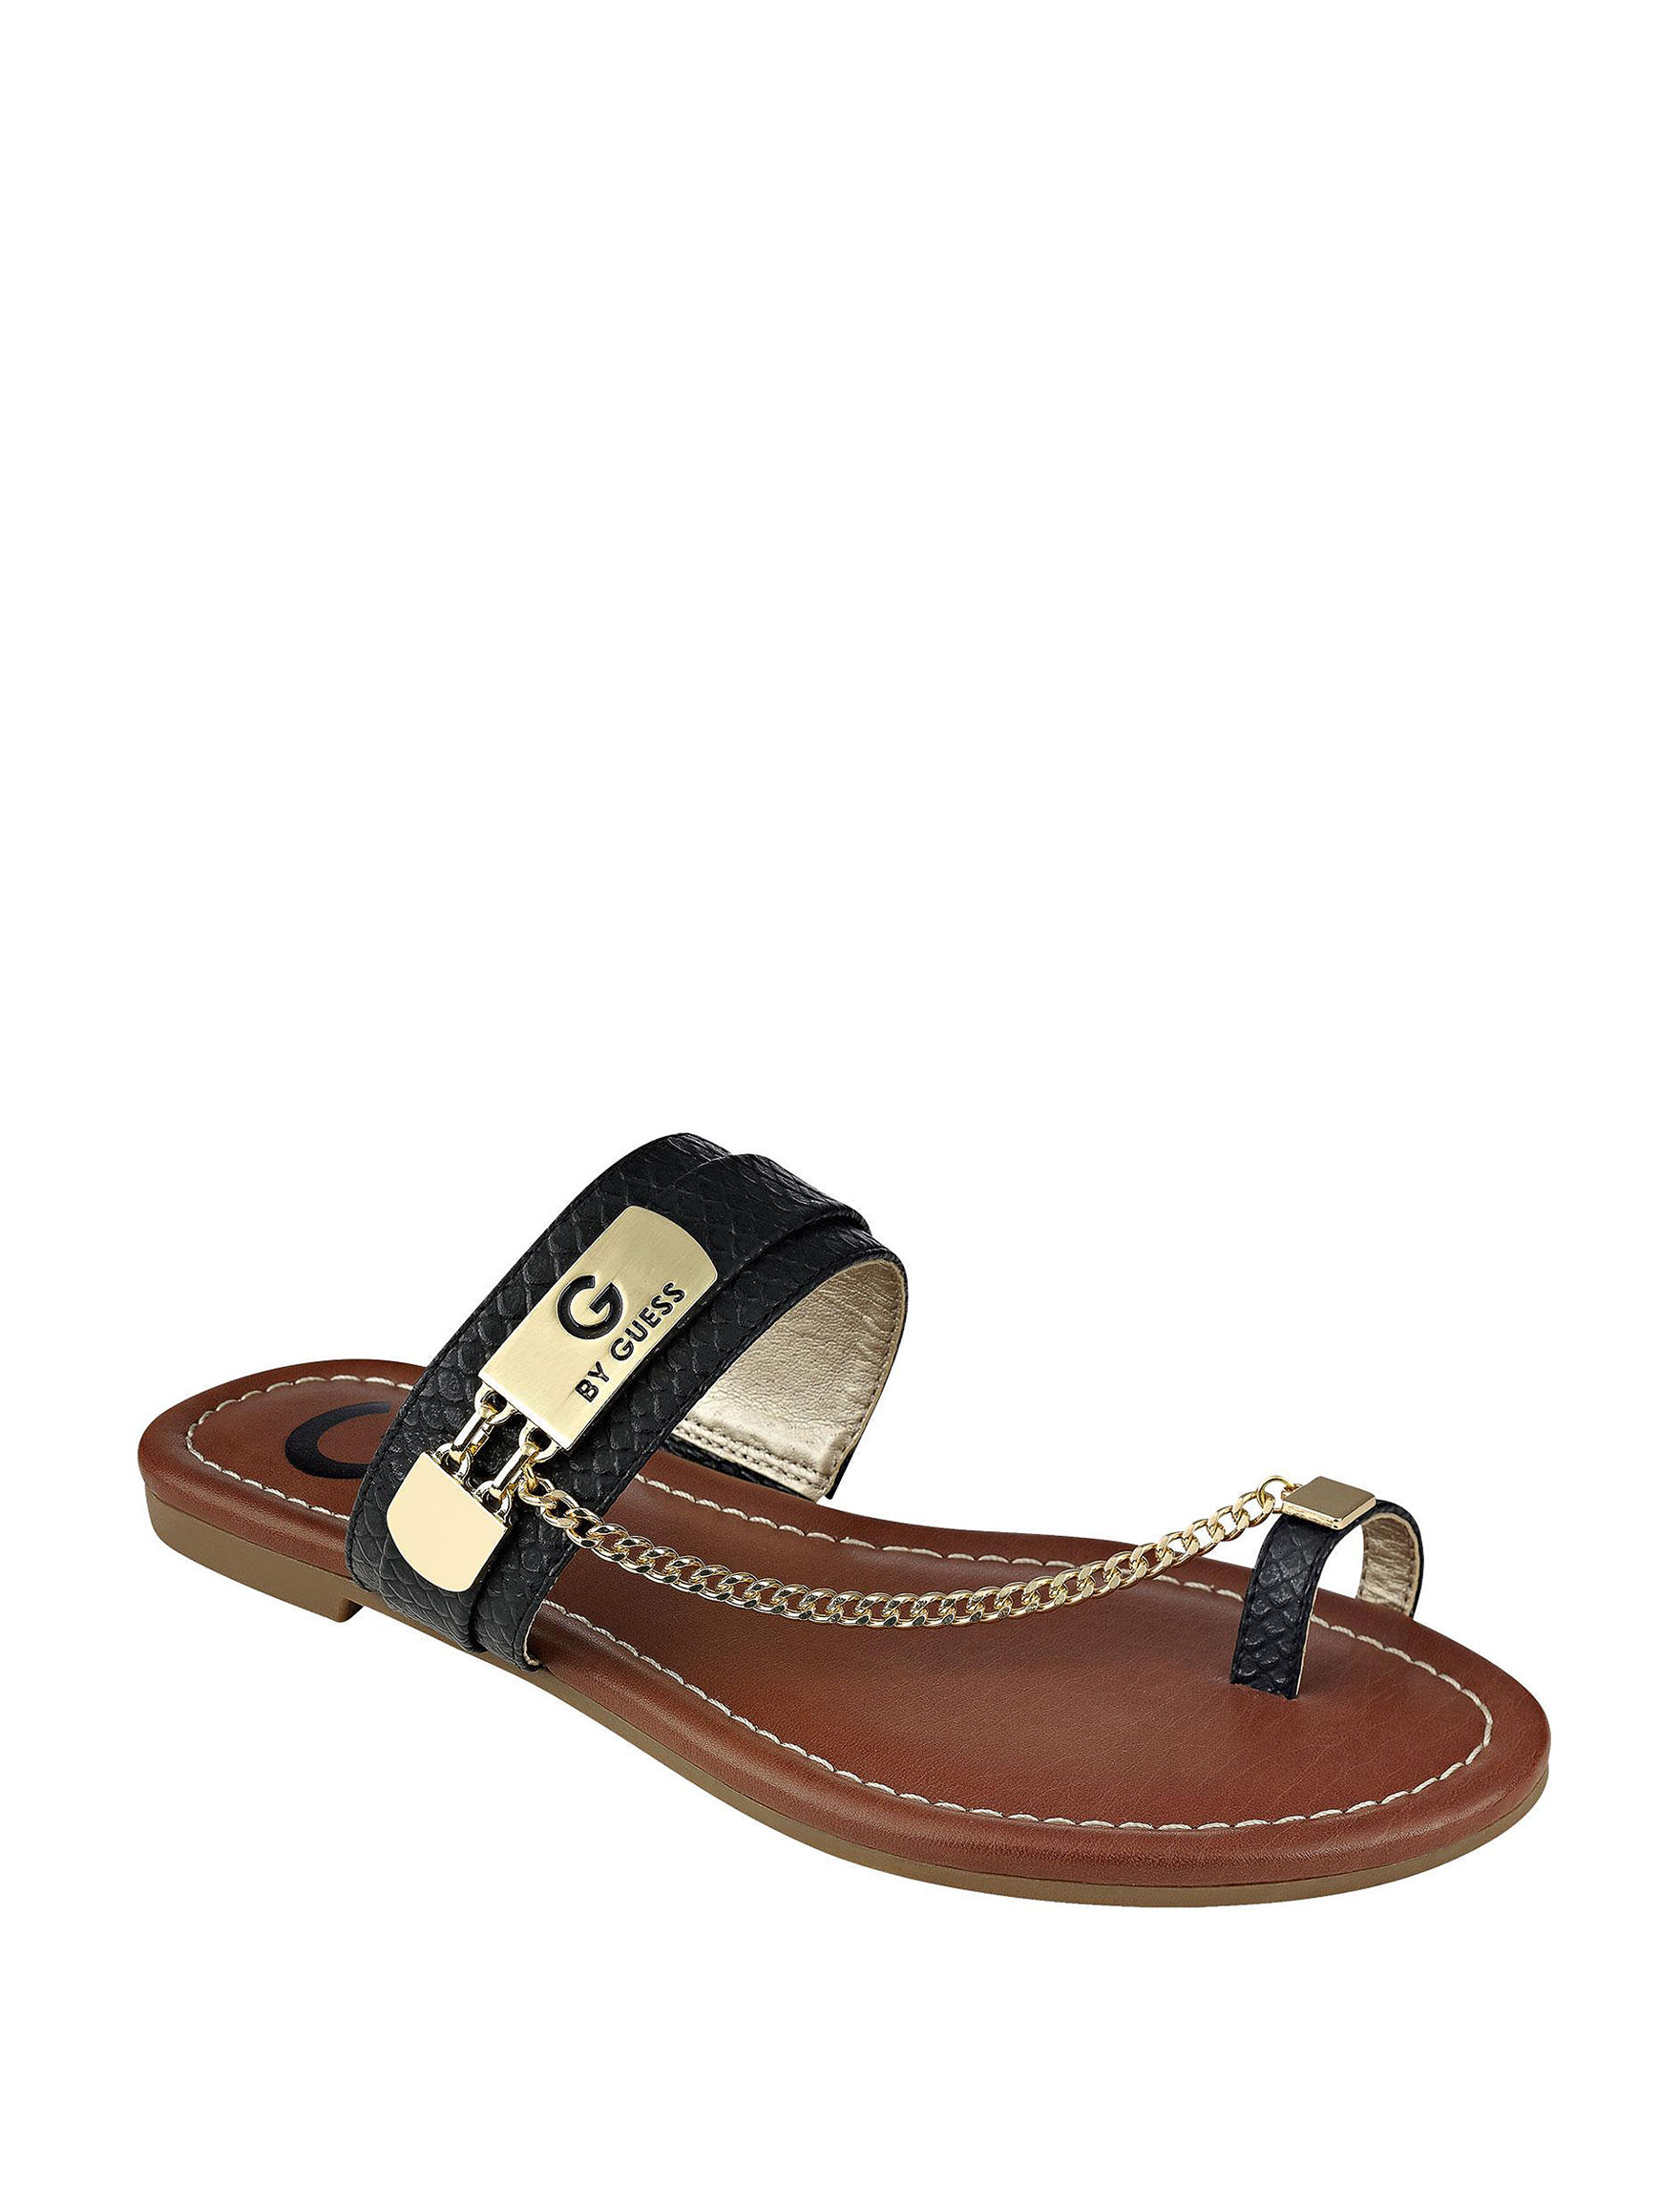 G by Guess Black Flat Sandals